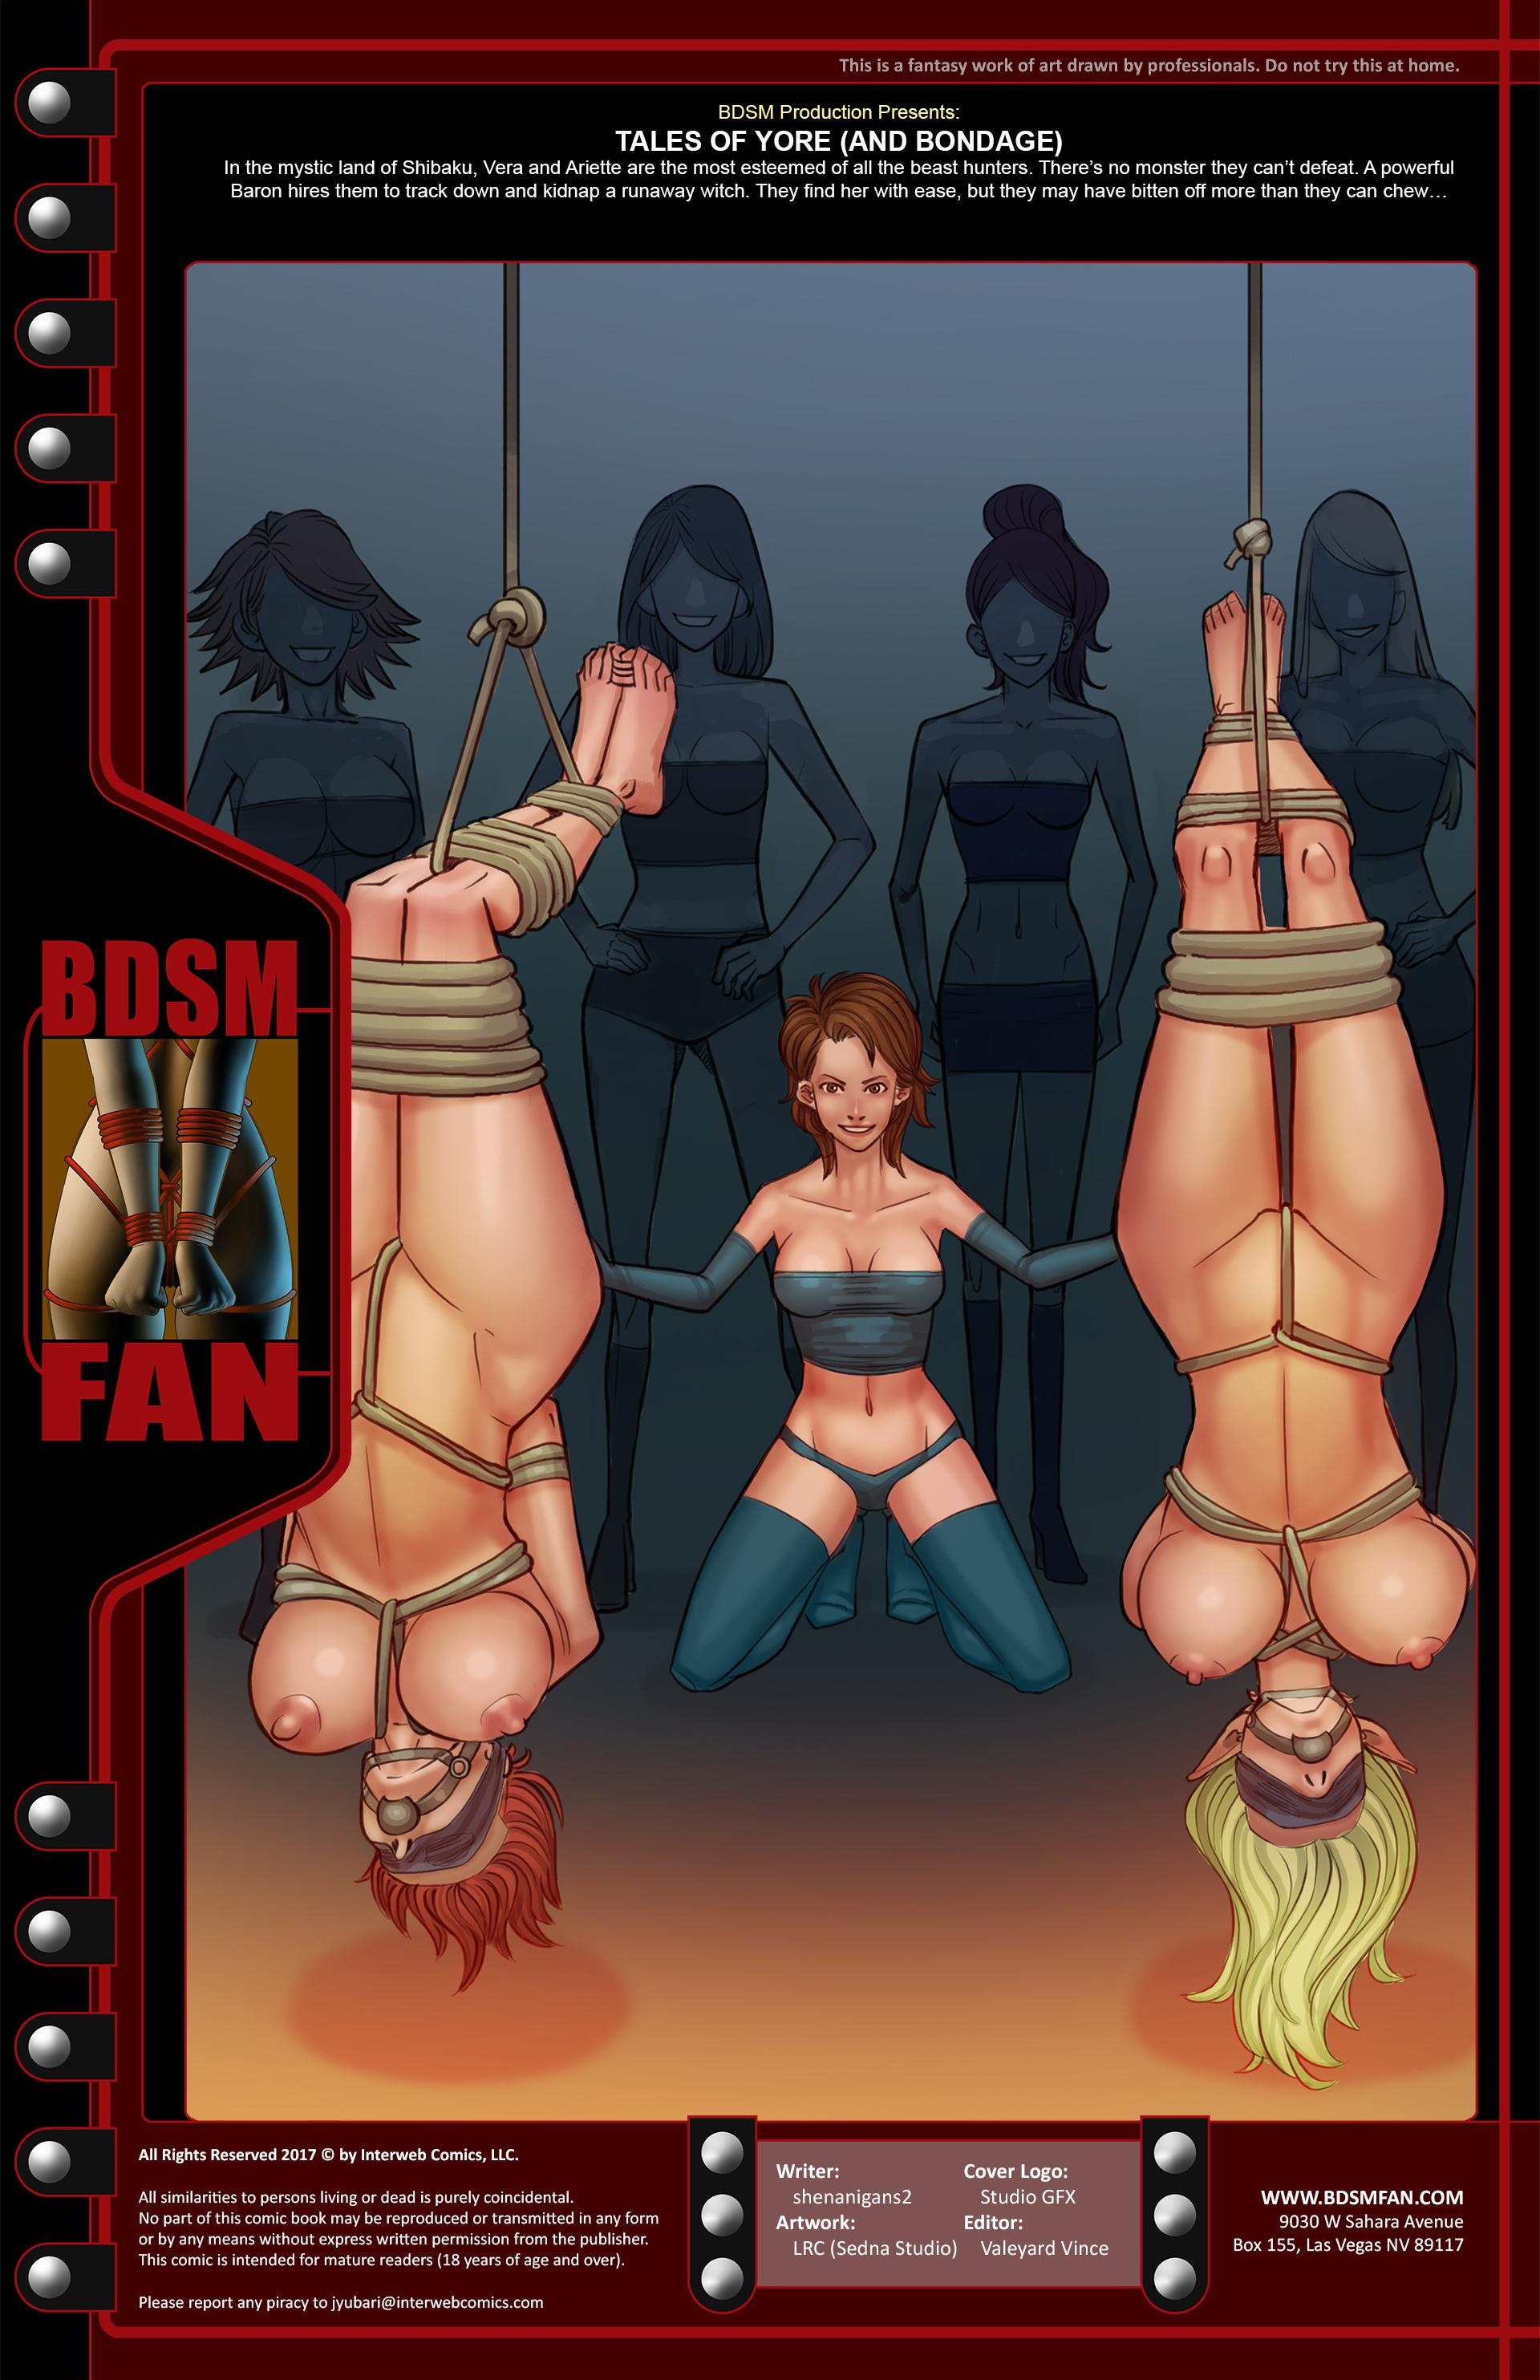 Free Bdsm Hardcore Porn bdsm fan- tales of yore and bondage free porn comic - hd